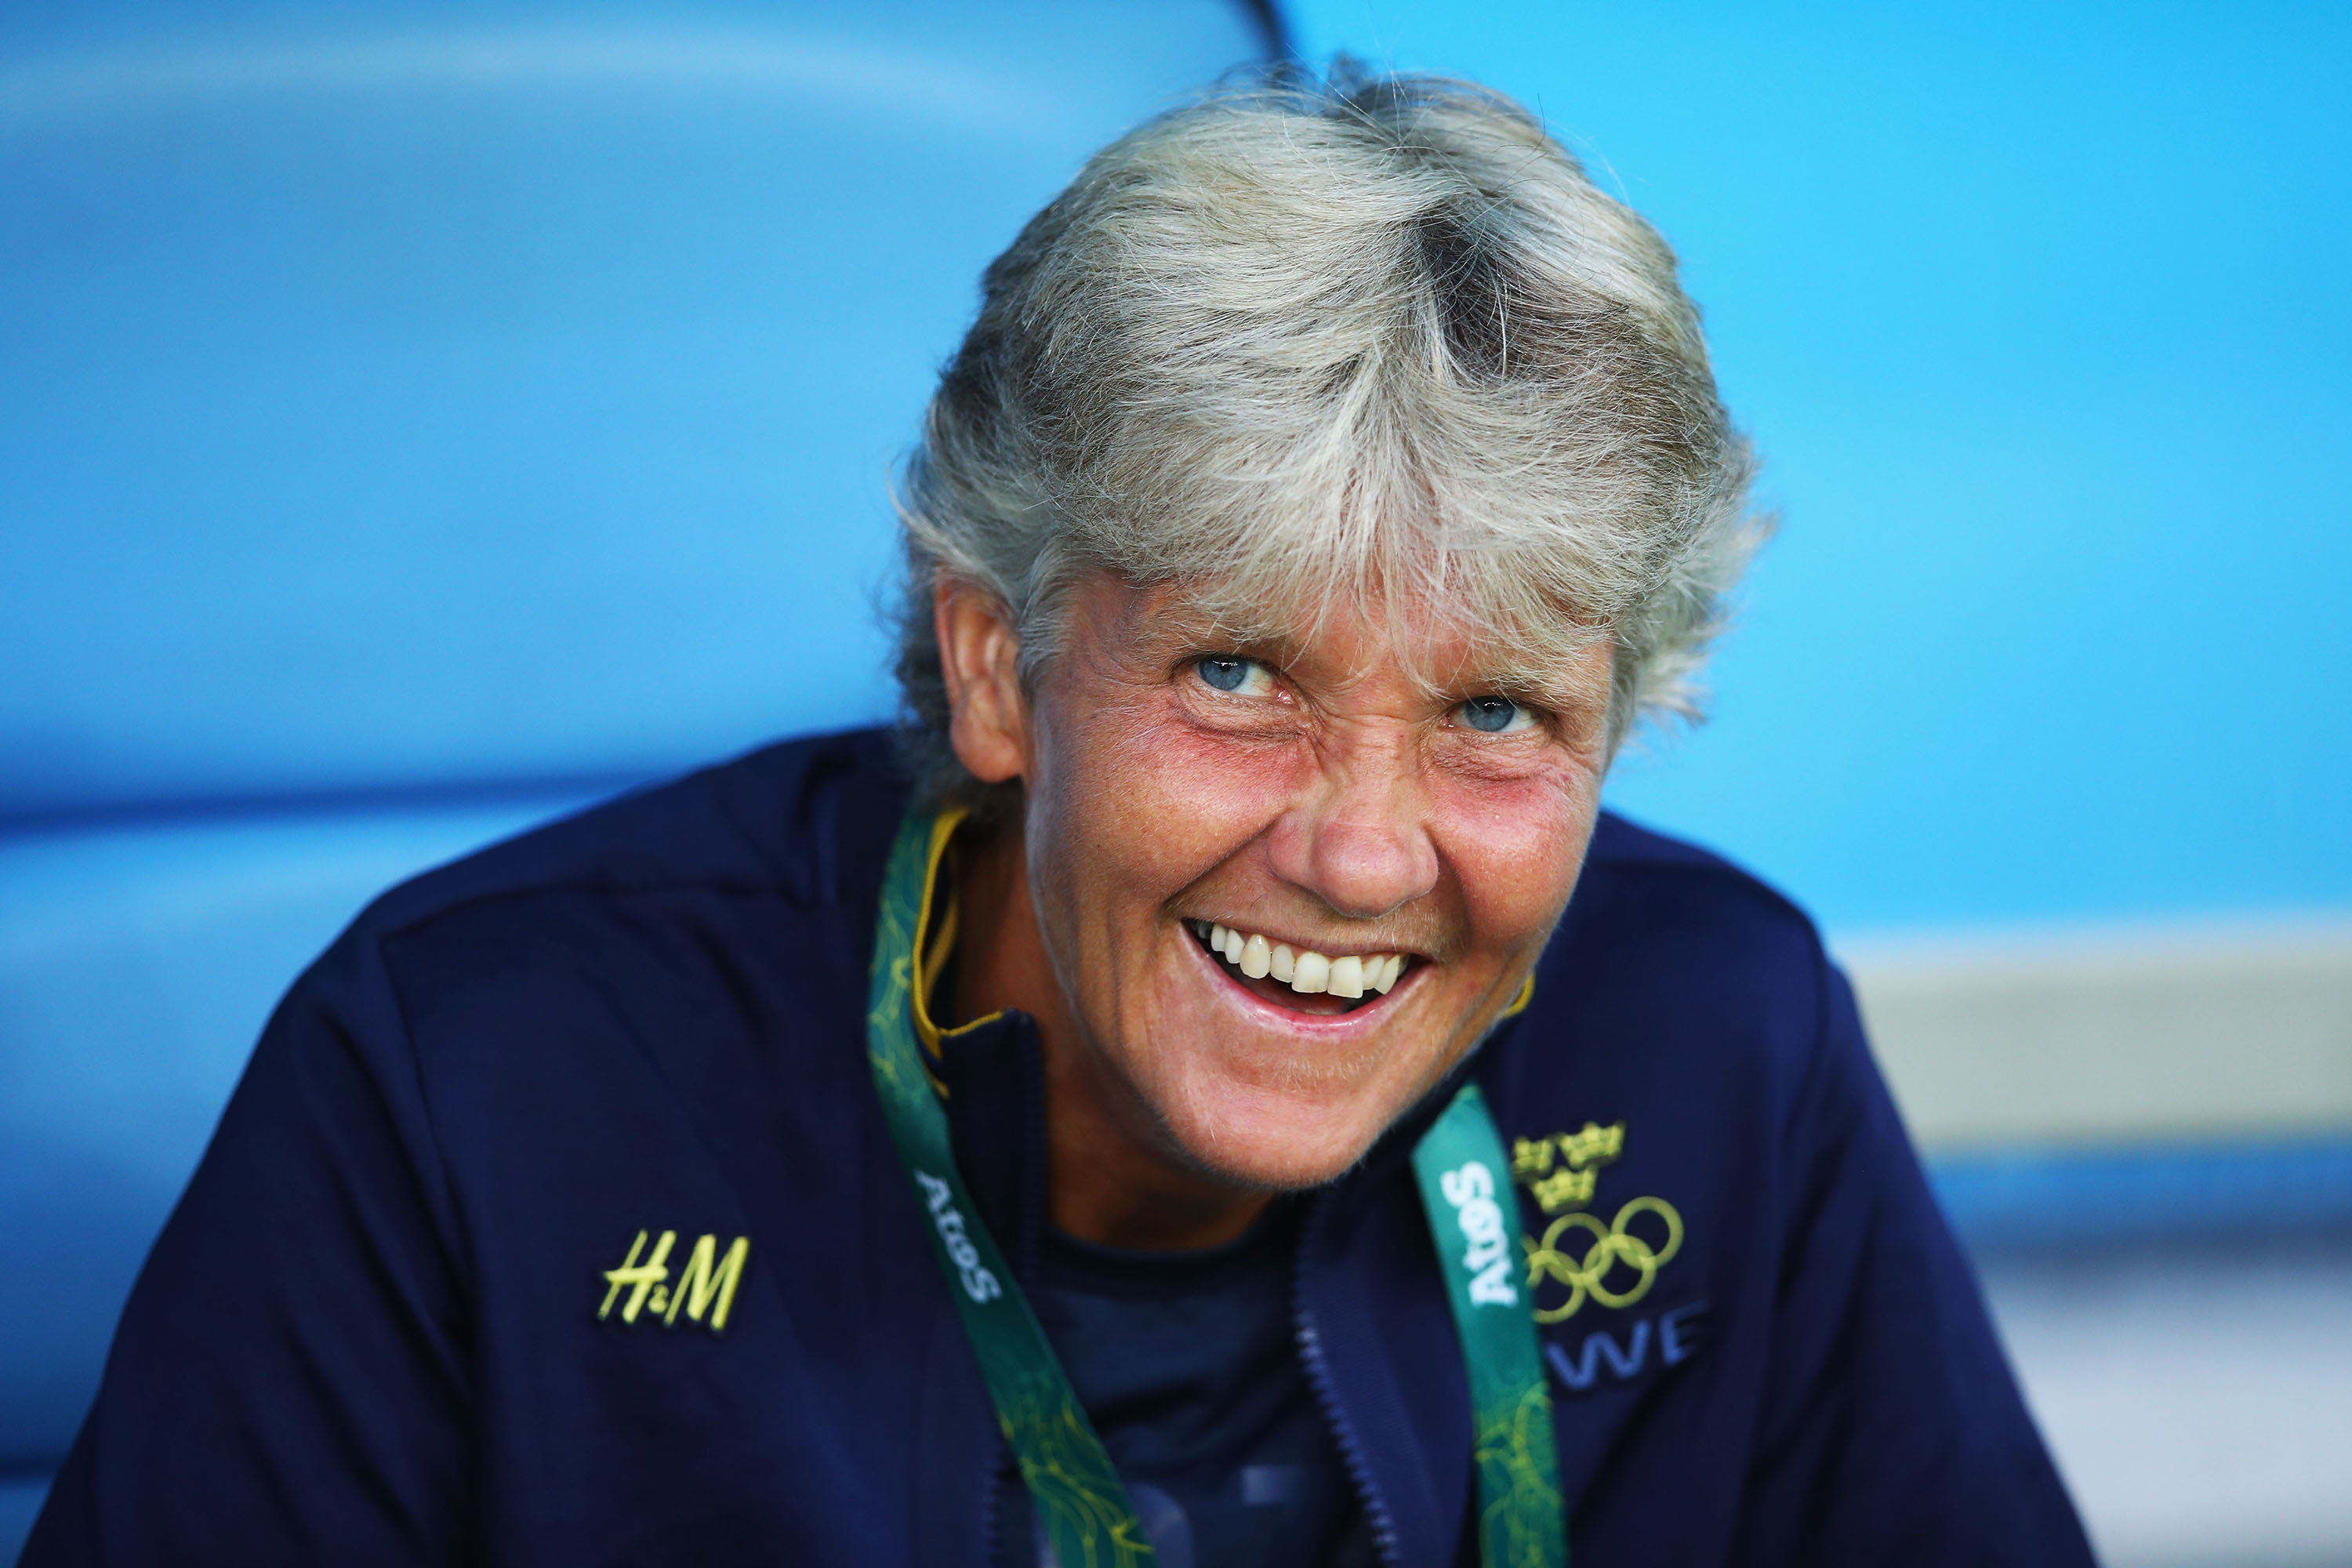 "Sweden manager Pia Sundhage was in the news this summer primarily because of Hope Solo, who called Sundhage's side ""cowardly"" after the U.S. was upset in the knockout stage of the Olympics. But Sundhage, who previously coached the USWNT, responded by leading an underdog Sweden team all the way to the gold medal match, where they lost narrowly to Germany. Sundhage did it by instructing her team to play defensively, absorbing pressure and counterattacking successfully to upset the U.S. and Brazil on their way to a silver medal. Not exactly cowardly."